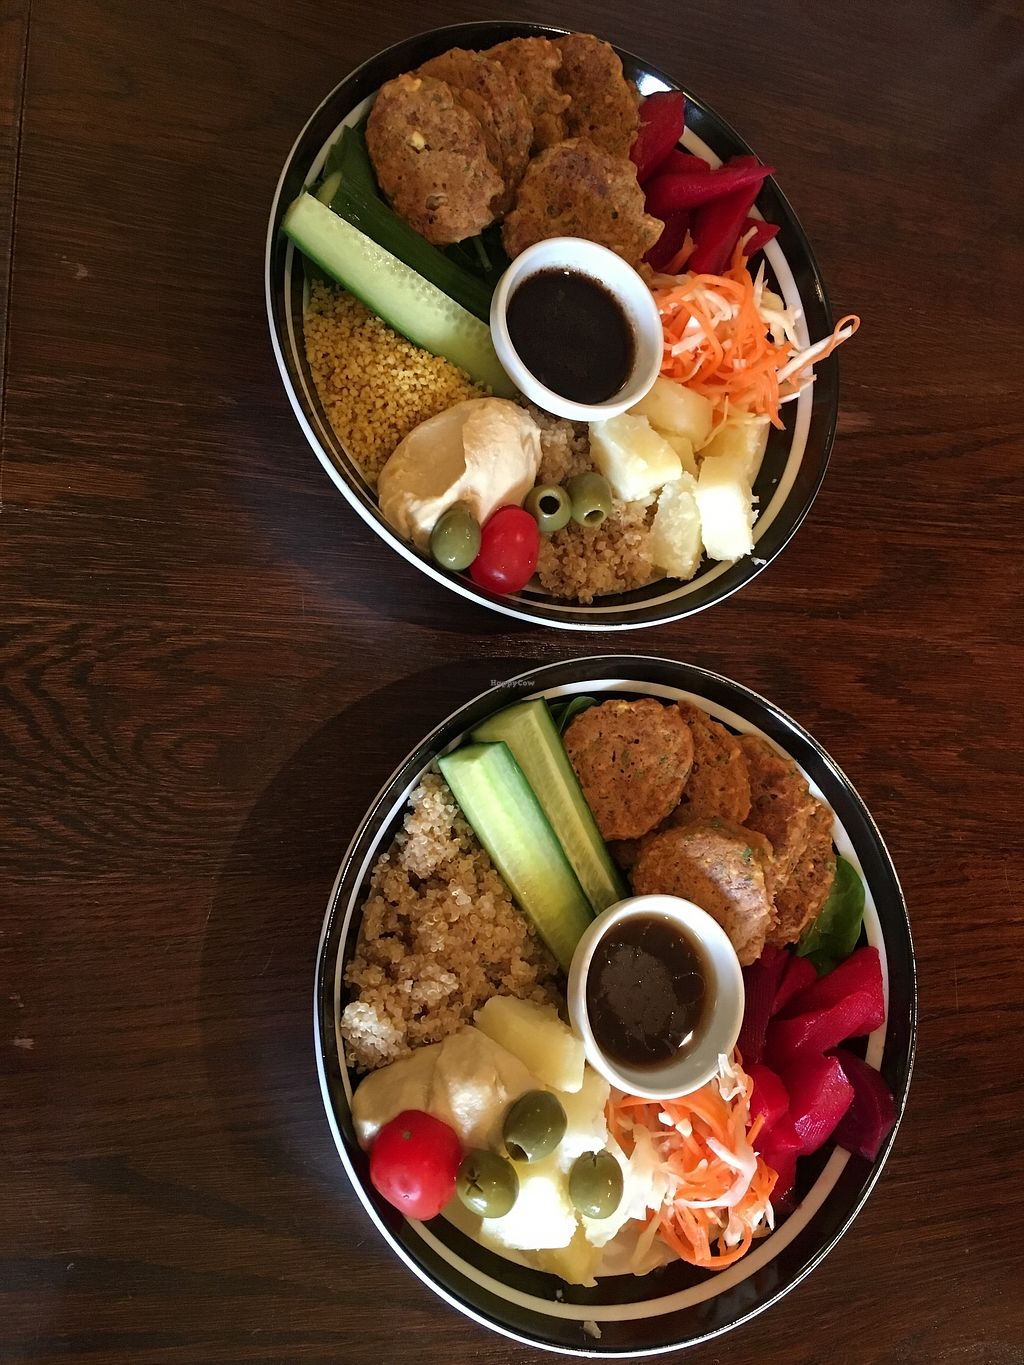 """Photo of Veggie Vibez  by <a href=""""/members/profile/sineadamy"""">sineadamy</a> <br/>Buddha Bowl <br/> July 27, 2017  - <a href='/contact/abuse/image/85229/285639'>Report</a>"""